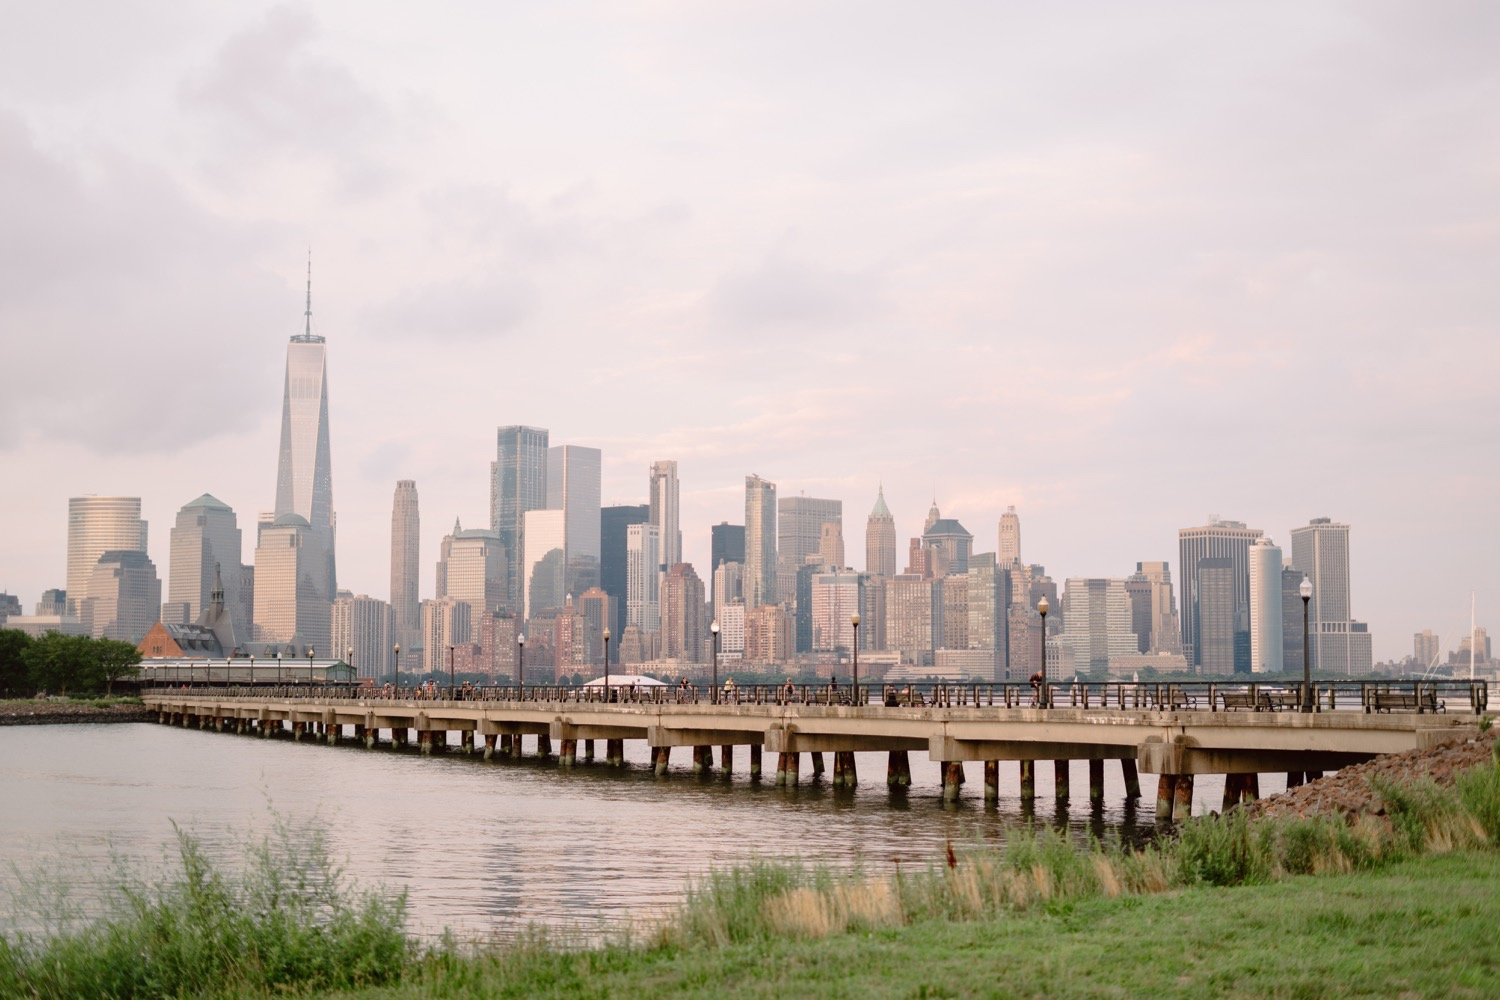 NYC skyline view from Liberty State Park Jersey City, Liberty State Park Views, Liberty State Park Pier, Liberty State PArk Engagement SEssion, Liberty State Park Jersey City Engagement Session, Liberty State Park Engagement Photos, Liberty State Park Engagement Photographer